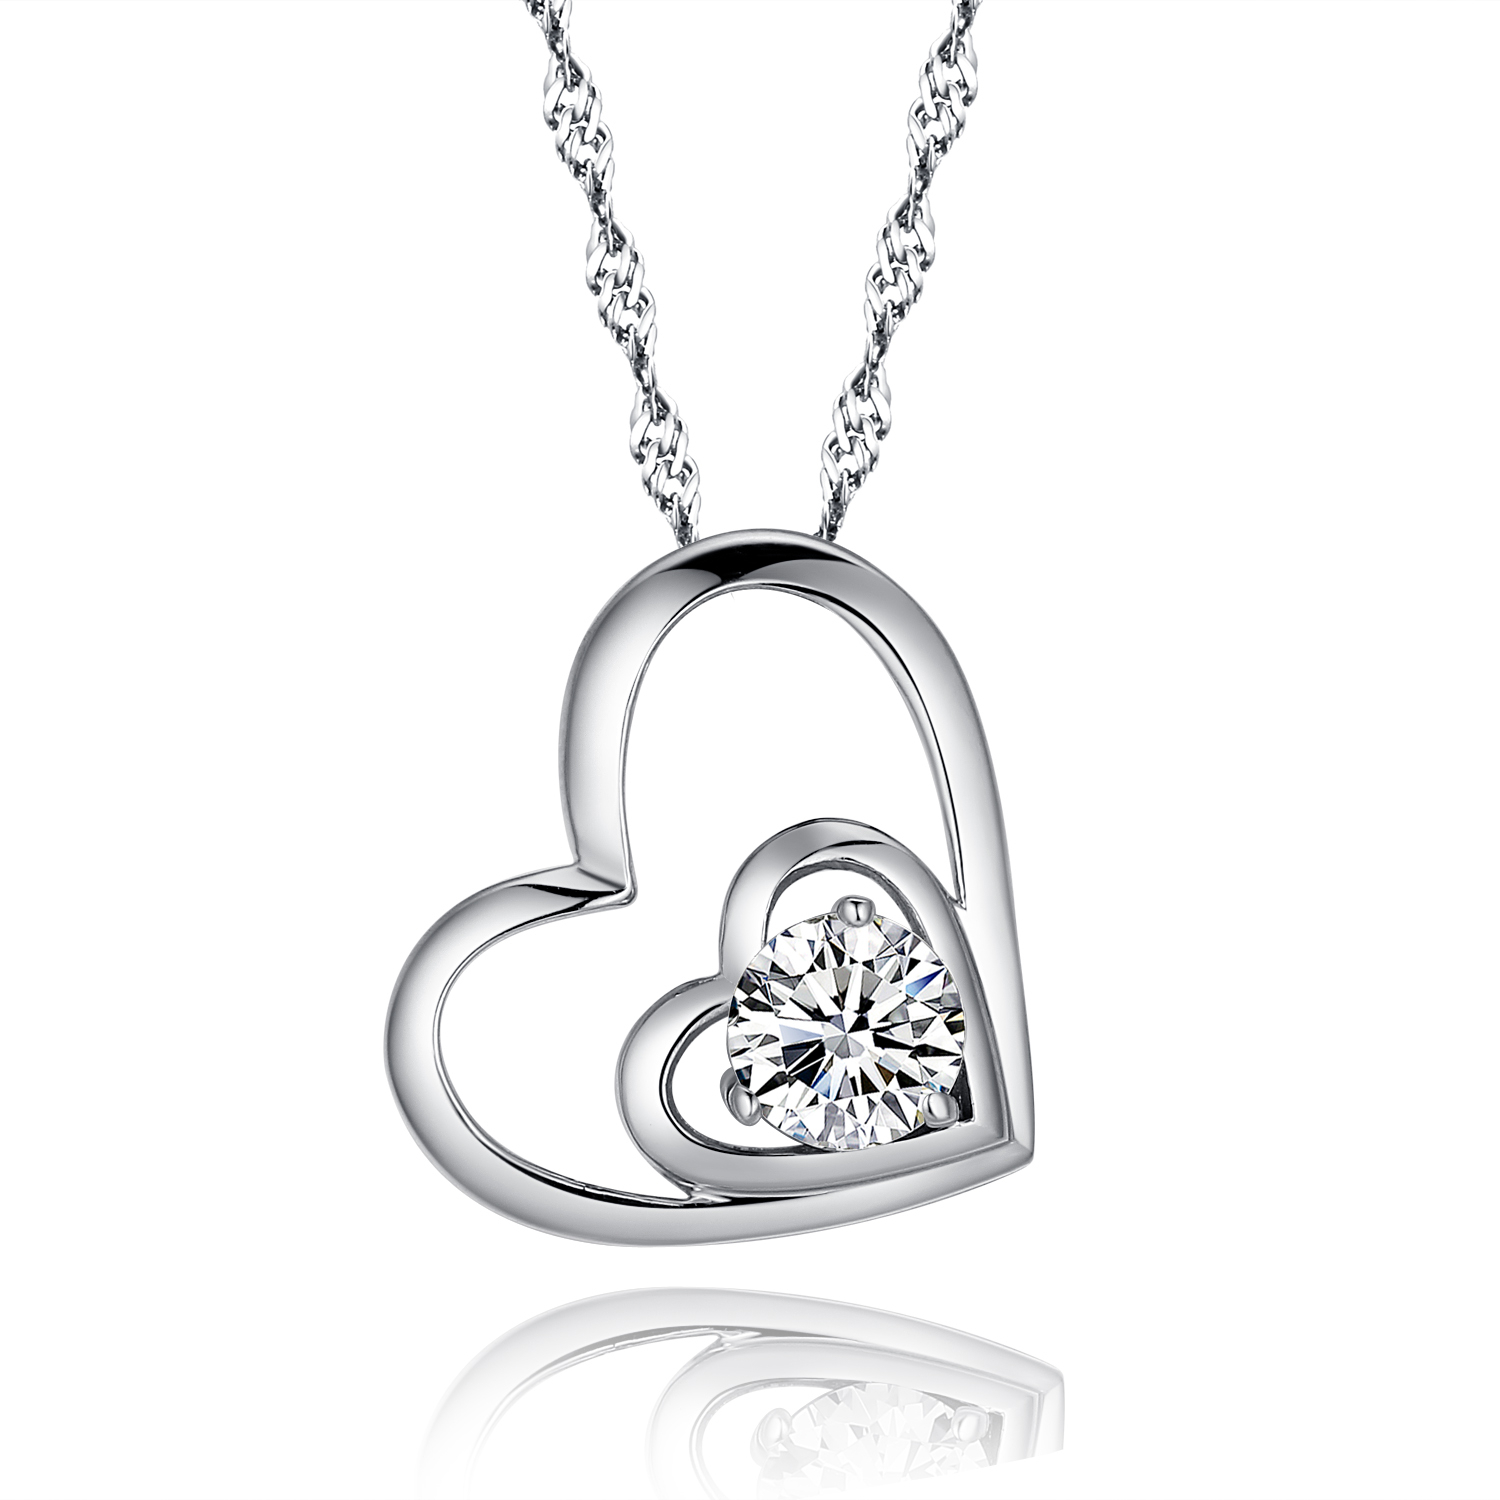 Google Chicute Sterling Silver Double Love Open Heart Pendant Necklace  Paved Cubic Zirconia Cz And 18 Inch Chain Women Jewelry For 2020 Heart Fan Pendant Necklaces (View 12 of 25)